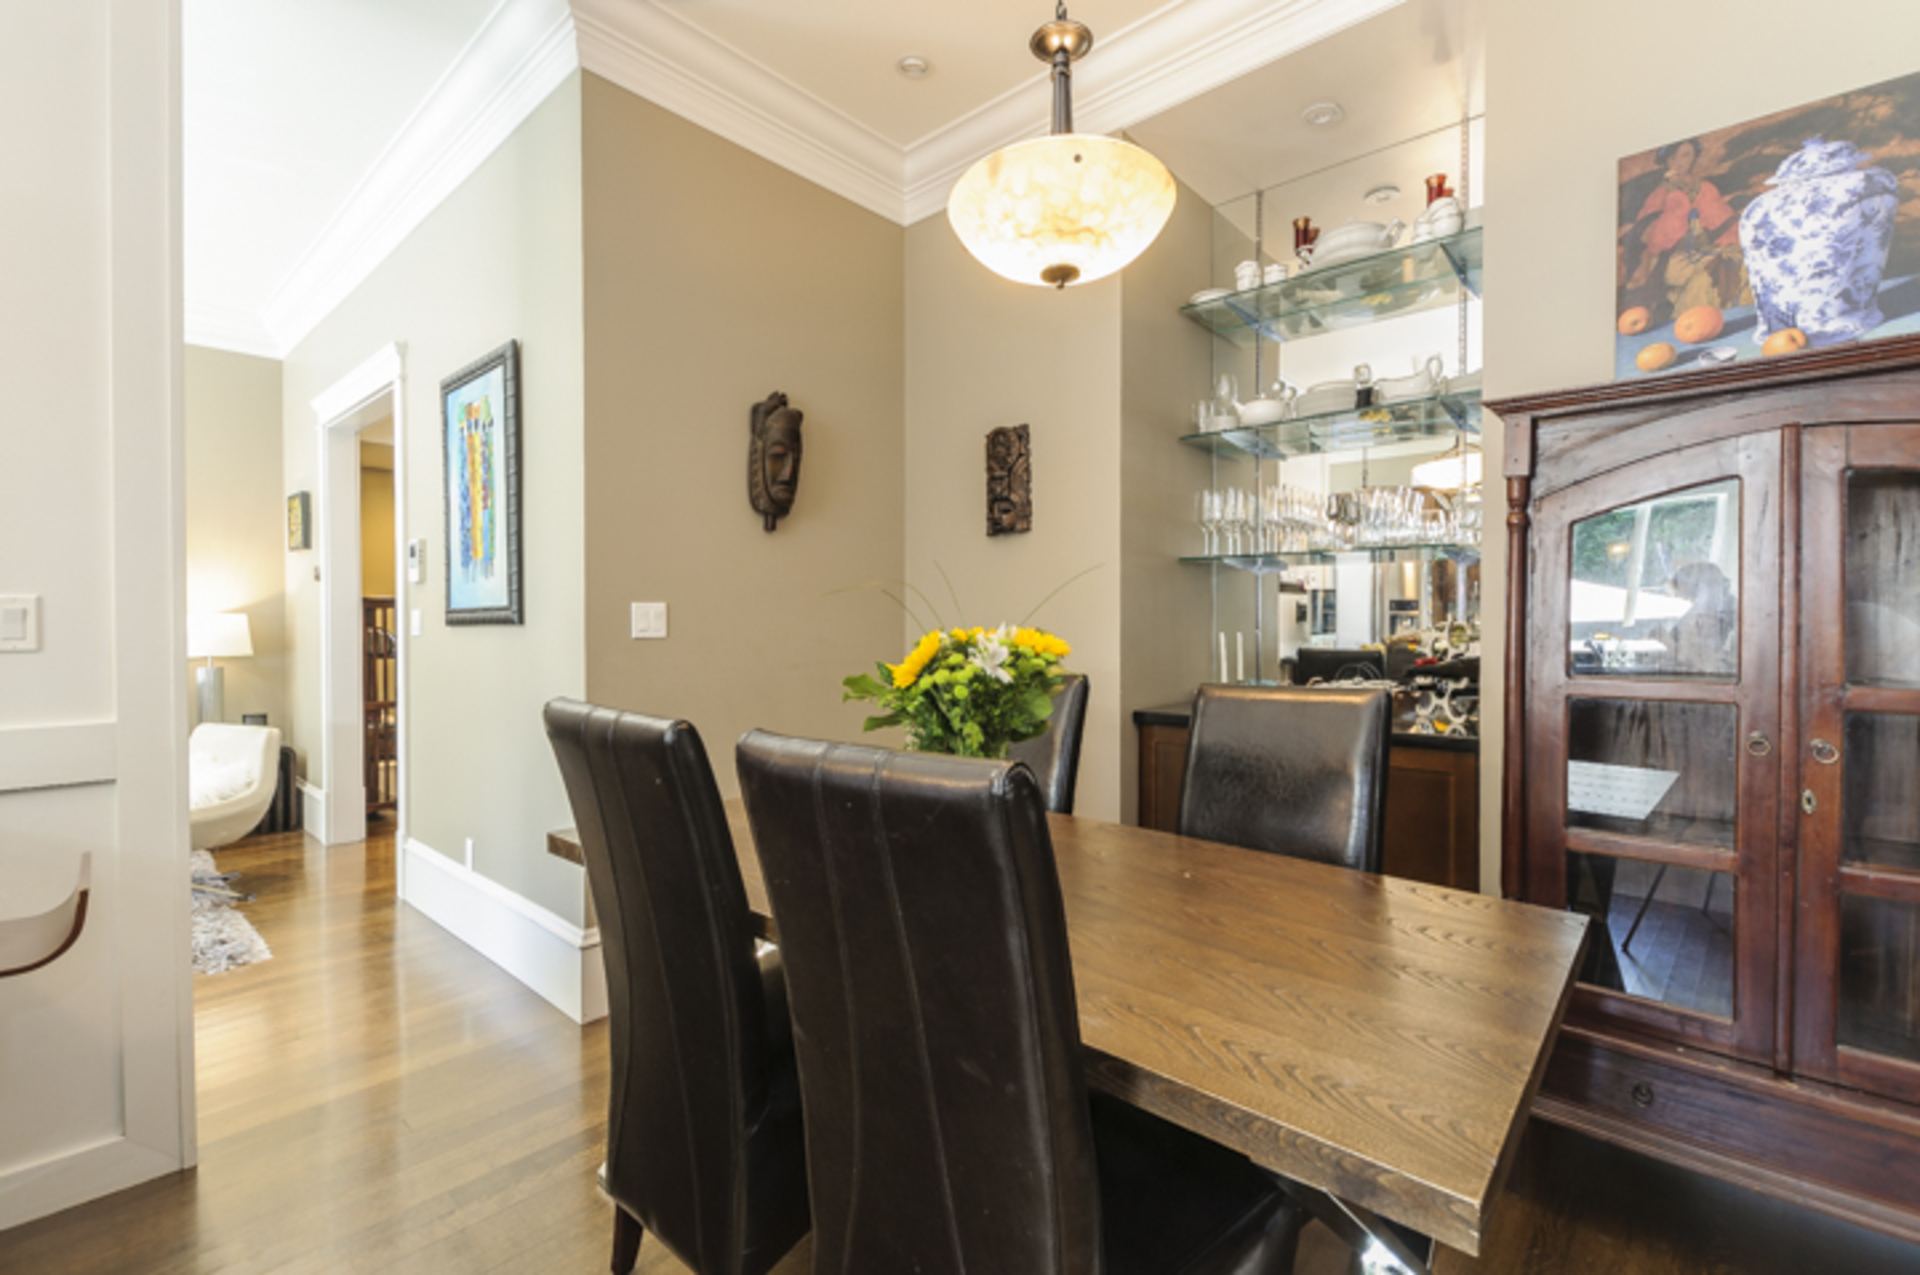 Dining Room - Take a look at those great buil in's! at 876 West 23rd Avenue, Cambie, Vancouver West